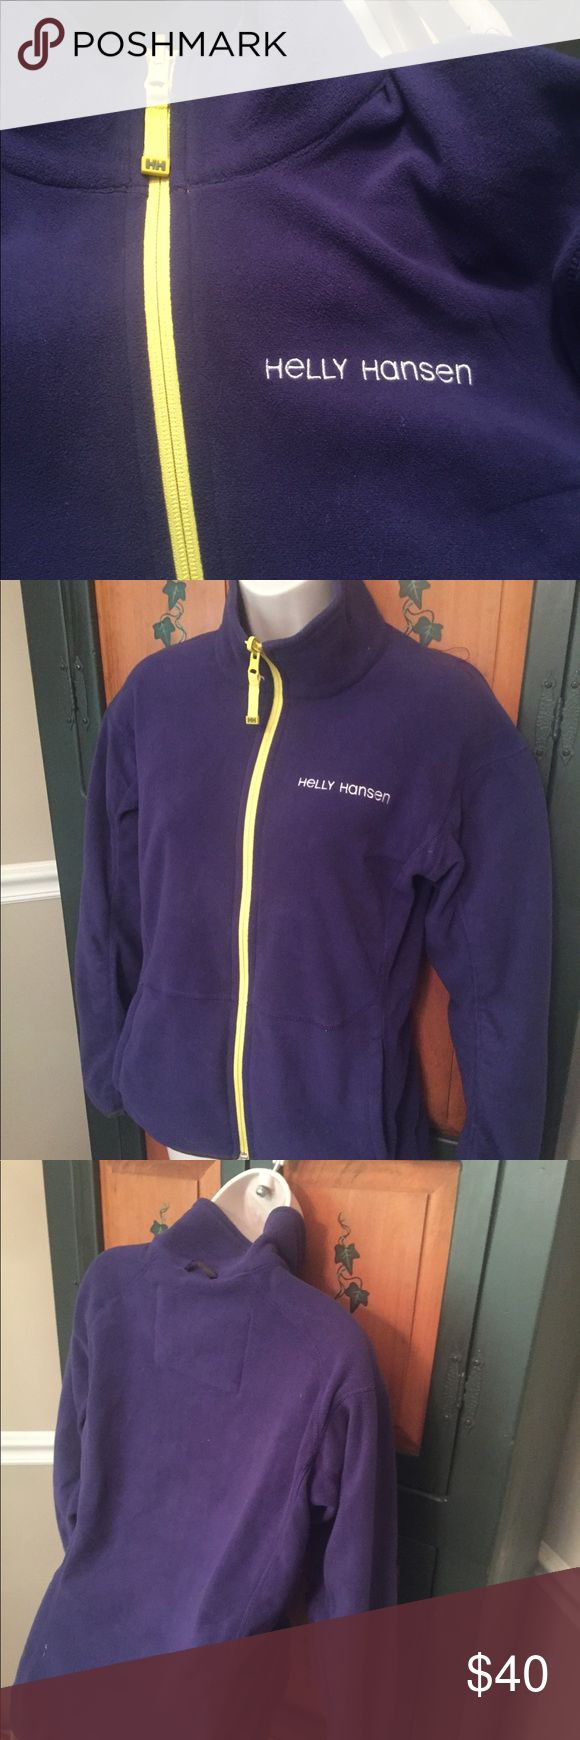 Helly Hansen Sz Sm Awesome fleece jacket. Lightweight like new.  Great for the slopes Helly Hansen Jackets & Coats